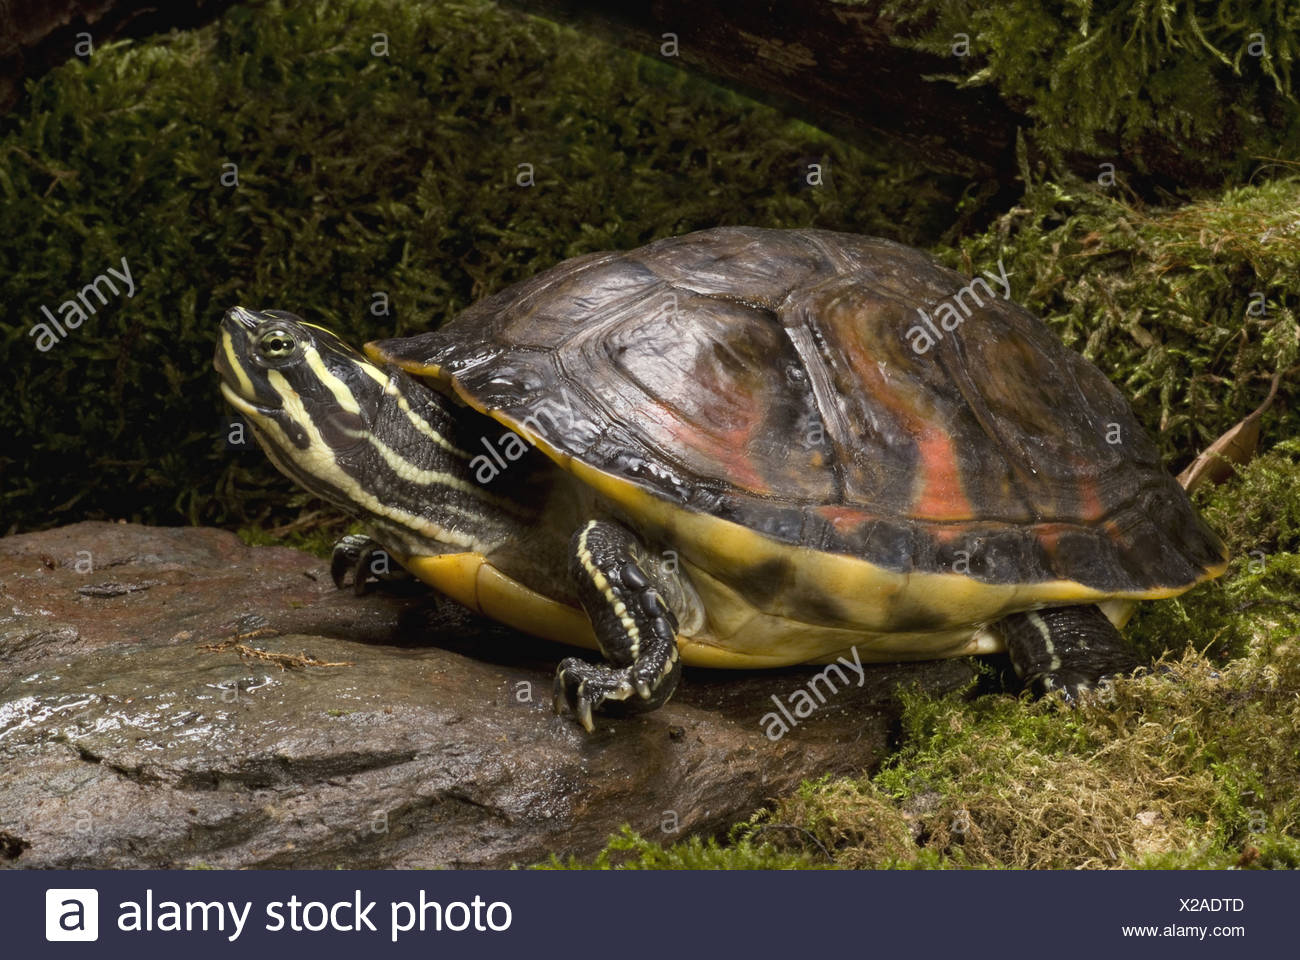 Florida Red-bellied Cooter, Pseudemys nelsoni Stock Photo